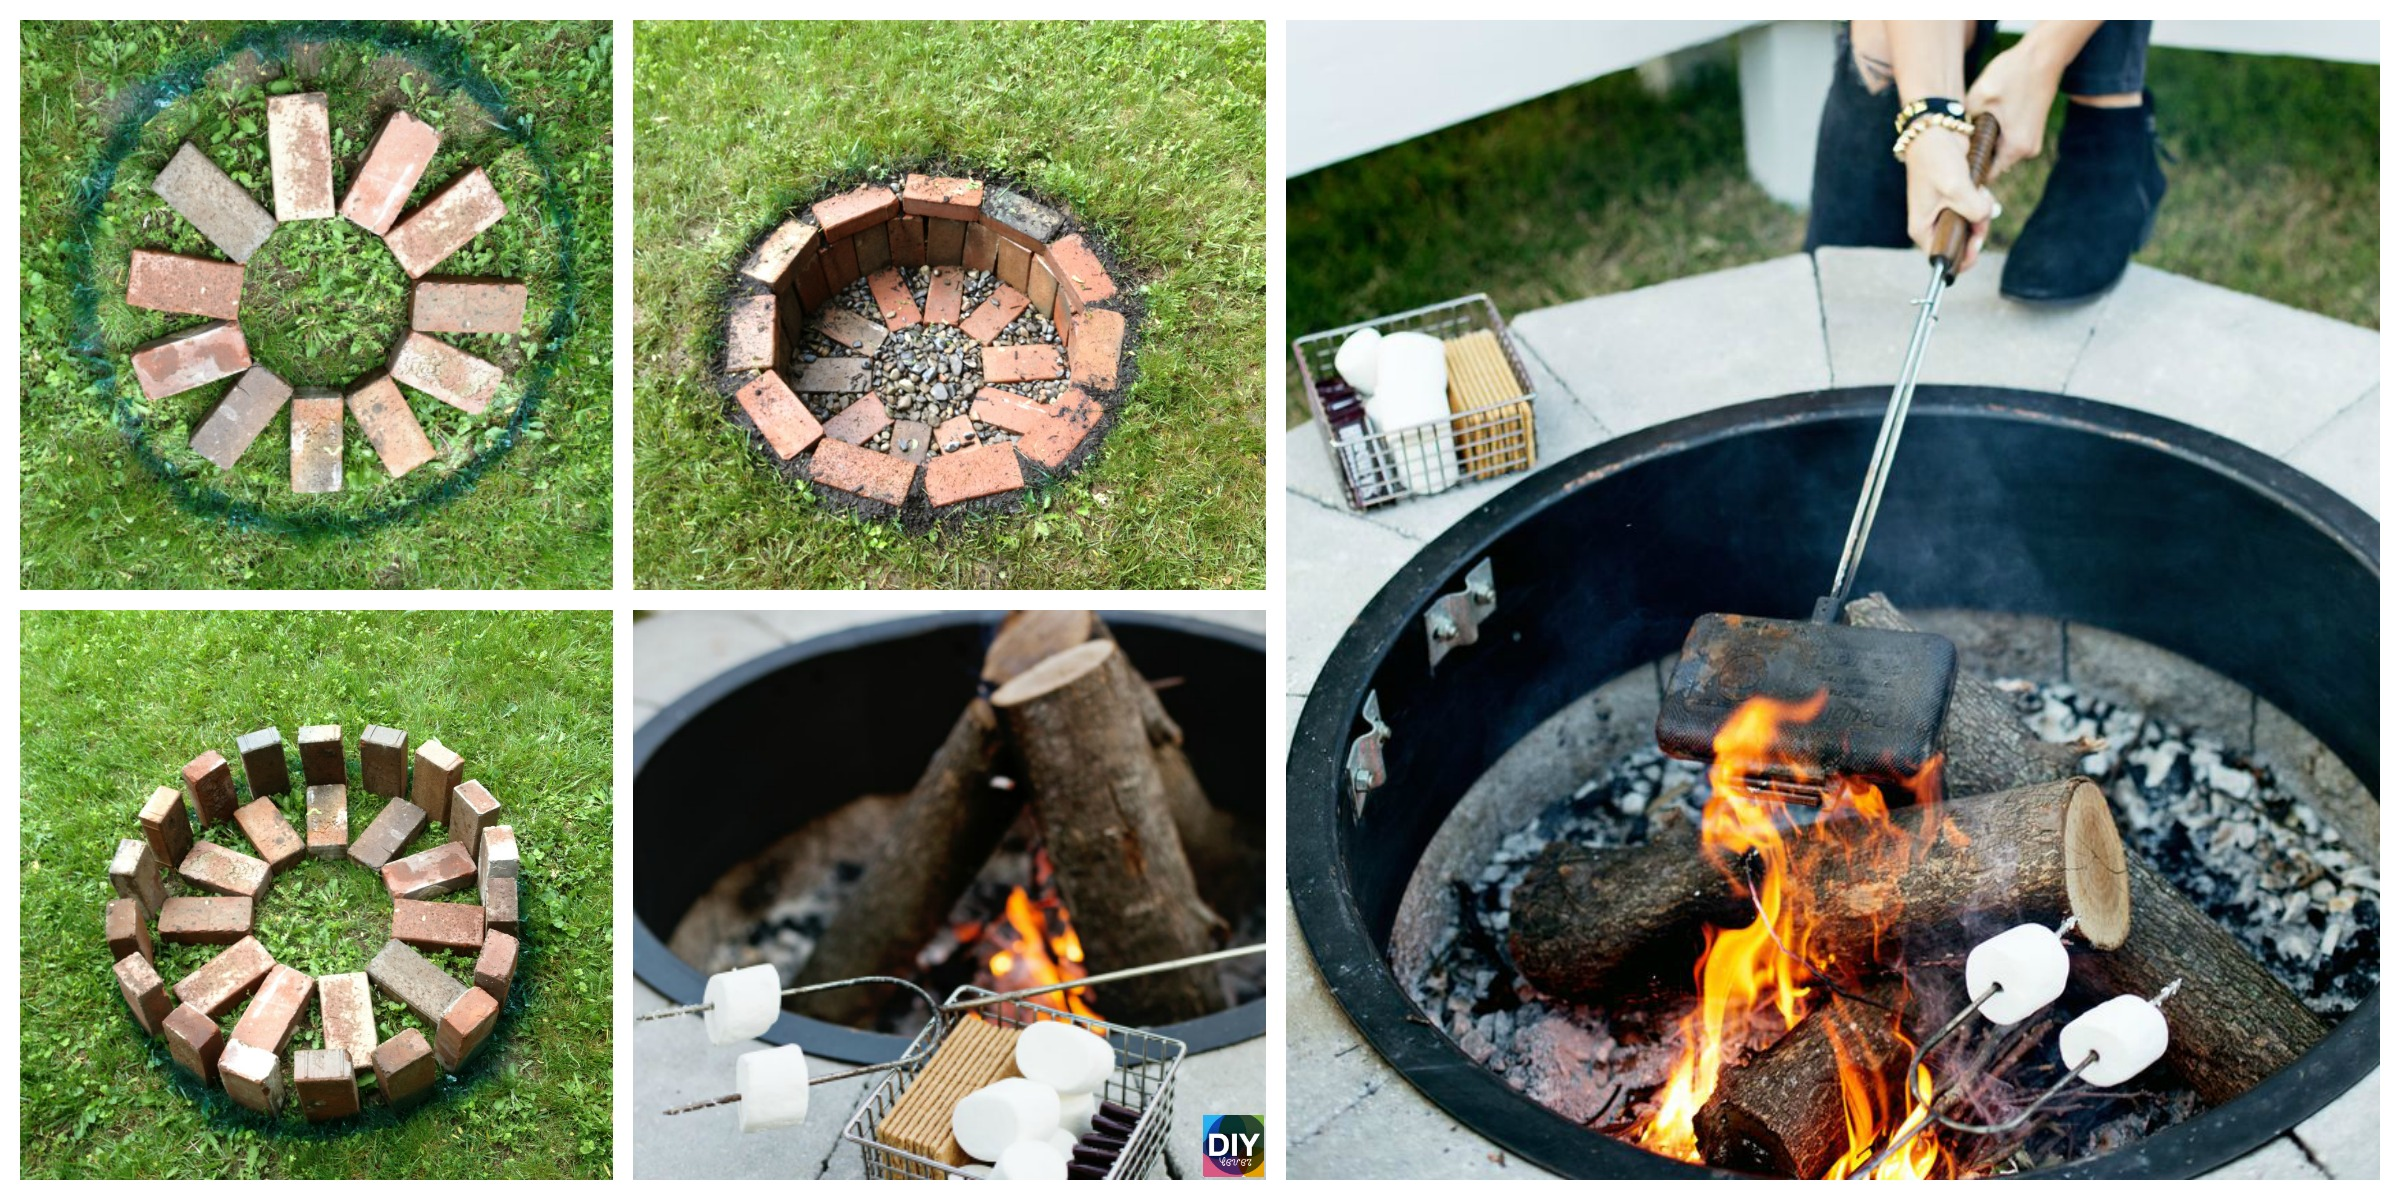 Build Fire Pit Tutorial – Step by Step